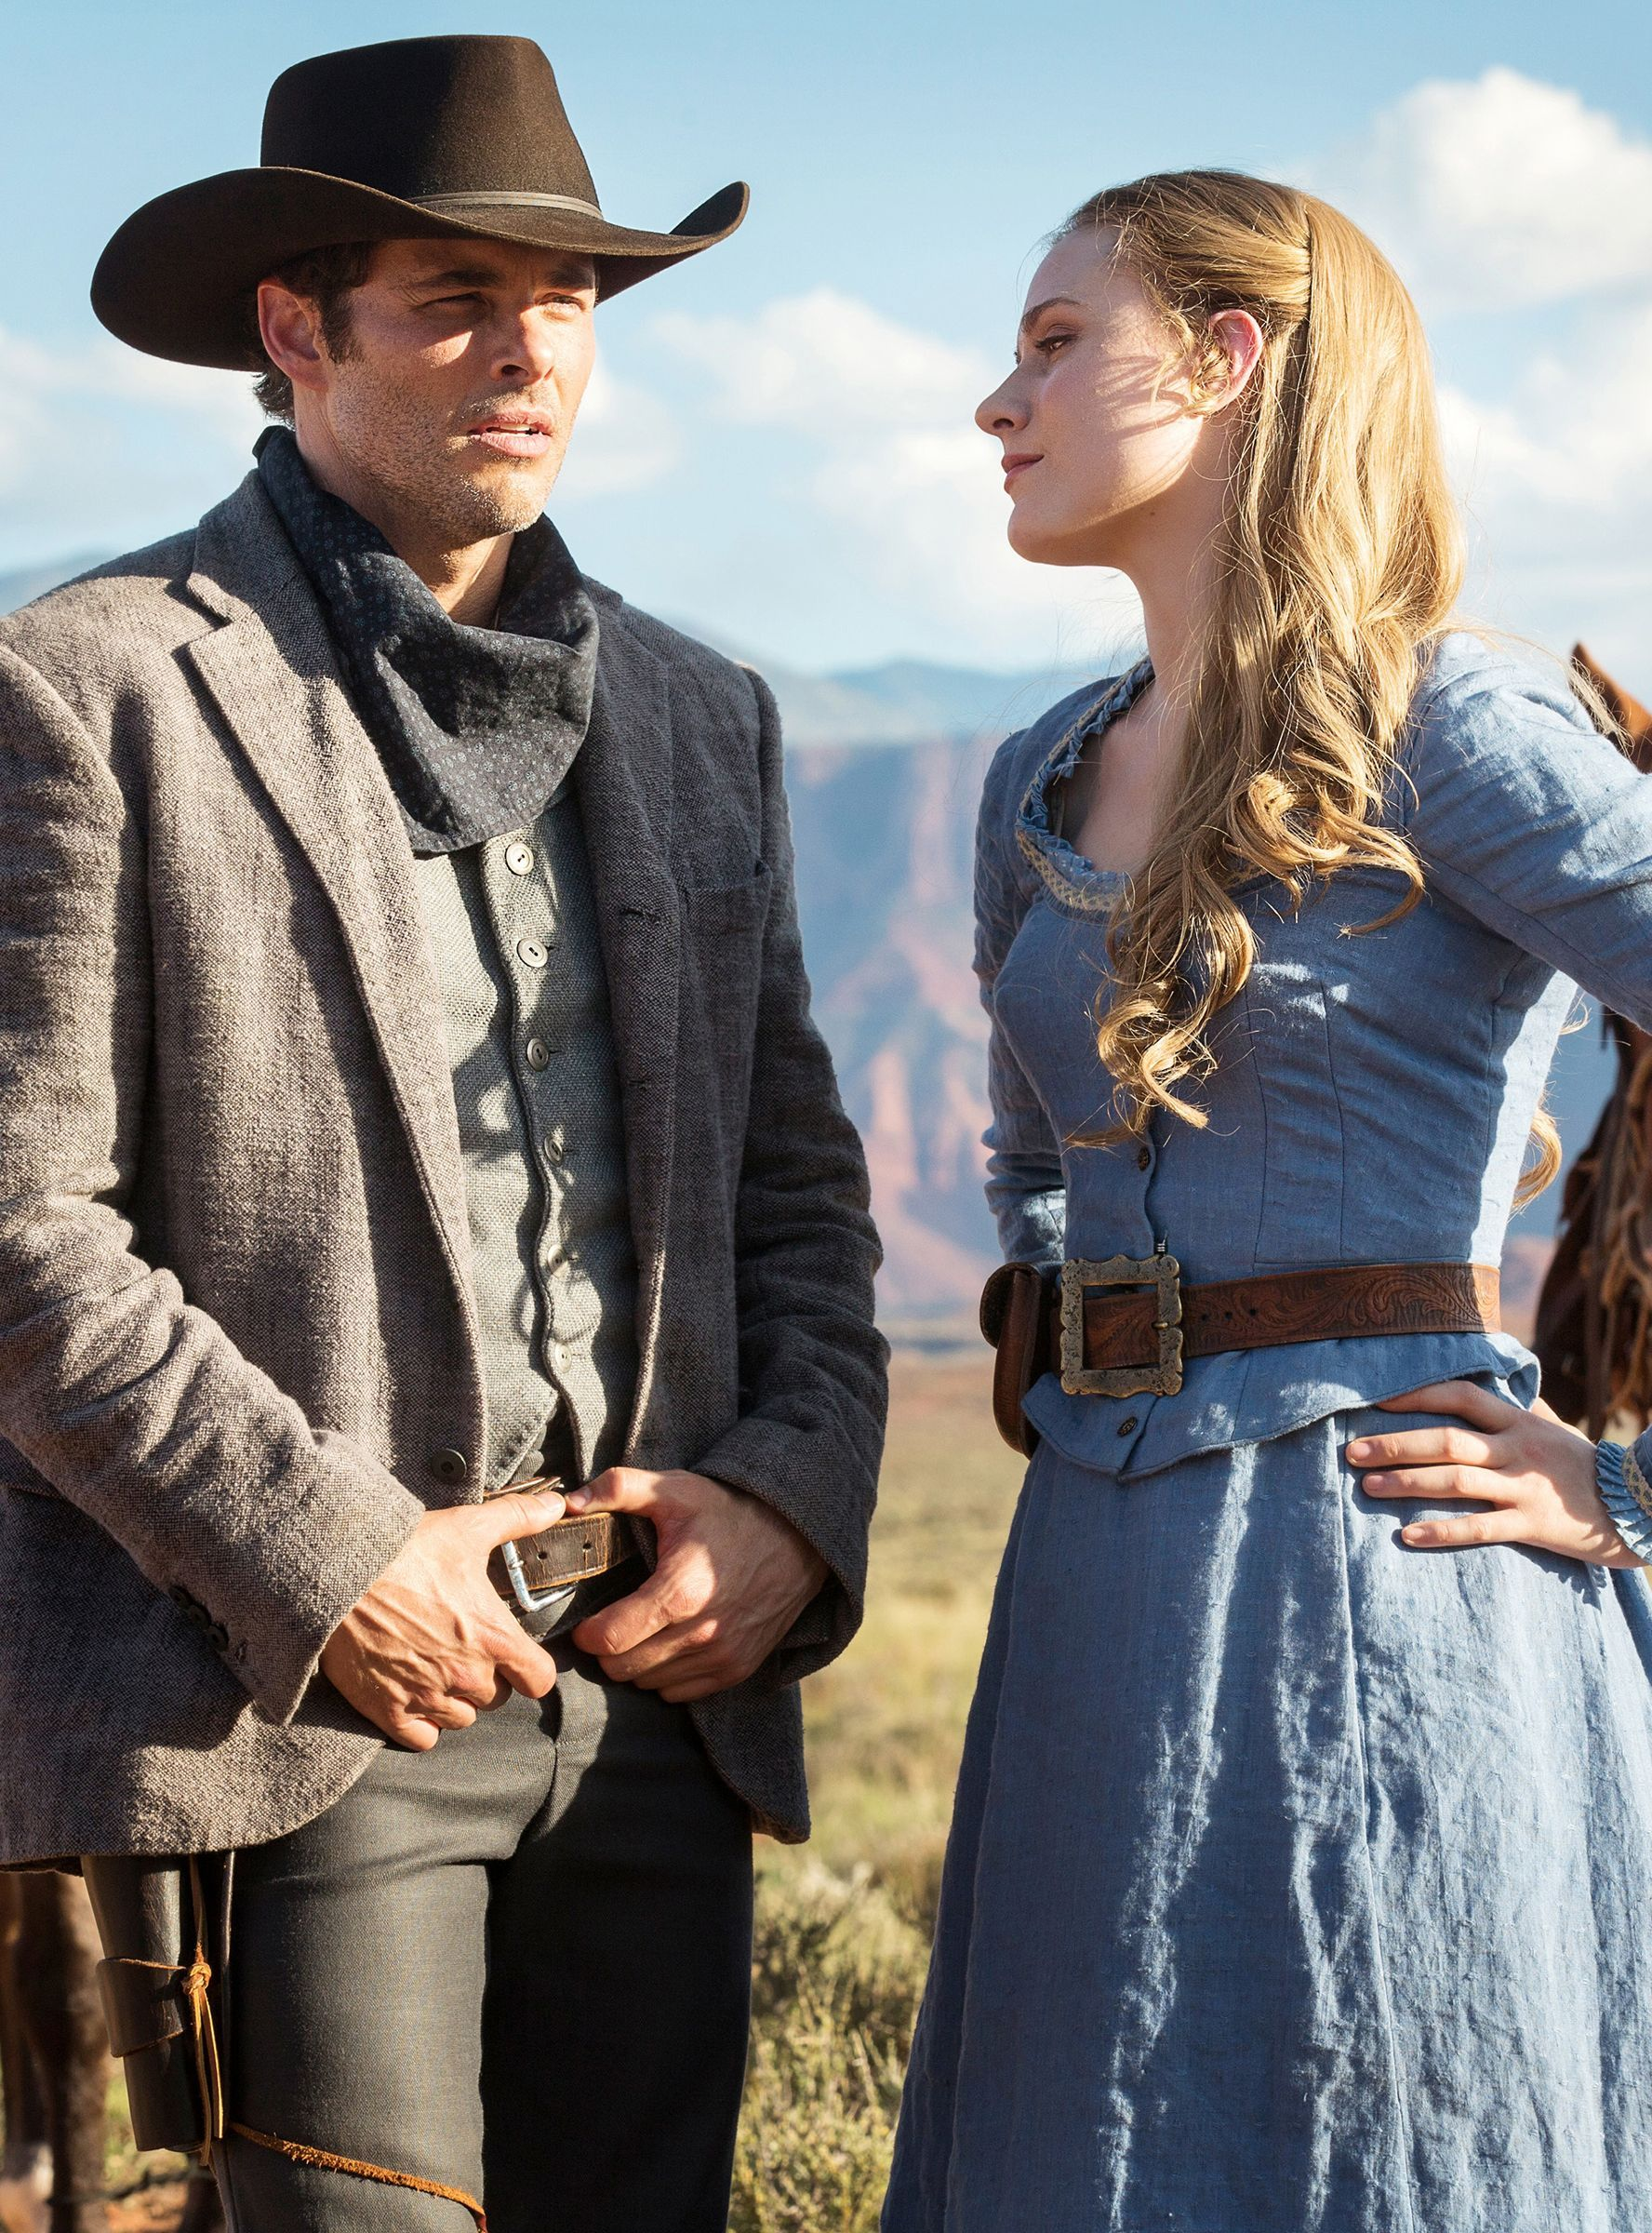 Can Dolores' Gun Kill Guests On Westworld? #refinery29 http://www.refinery29.com/2016/10/125096/westworld-fan-theories